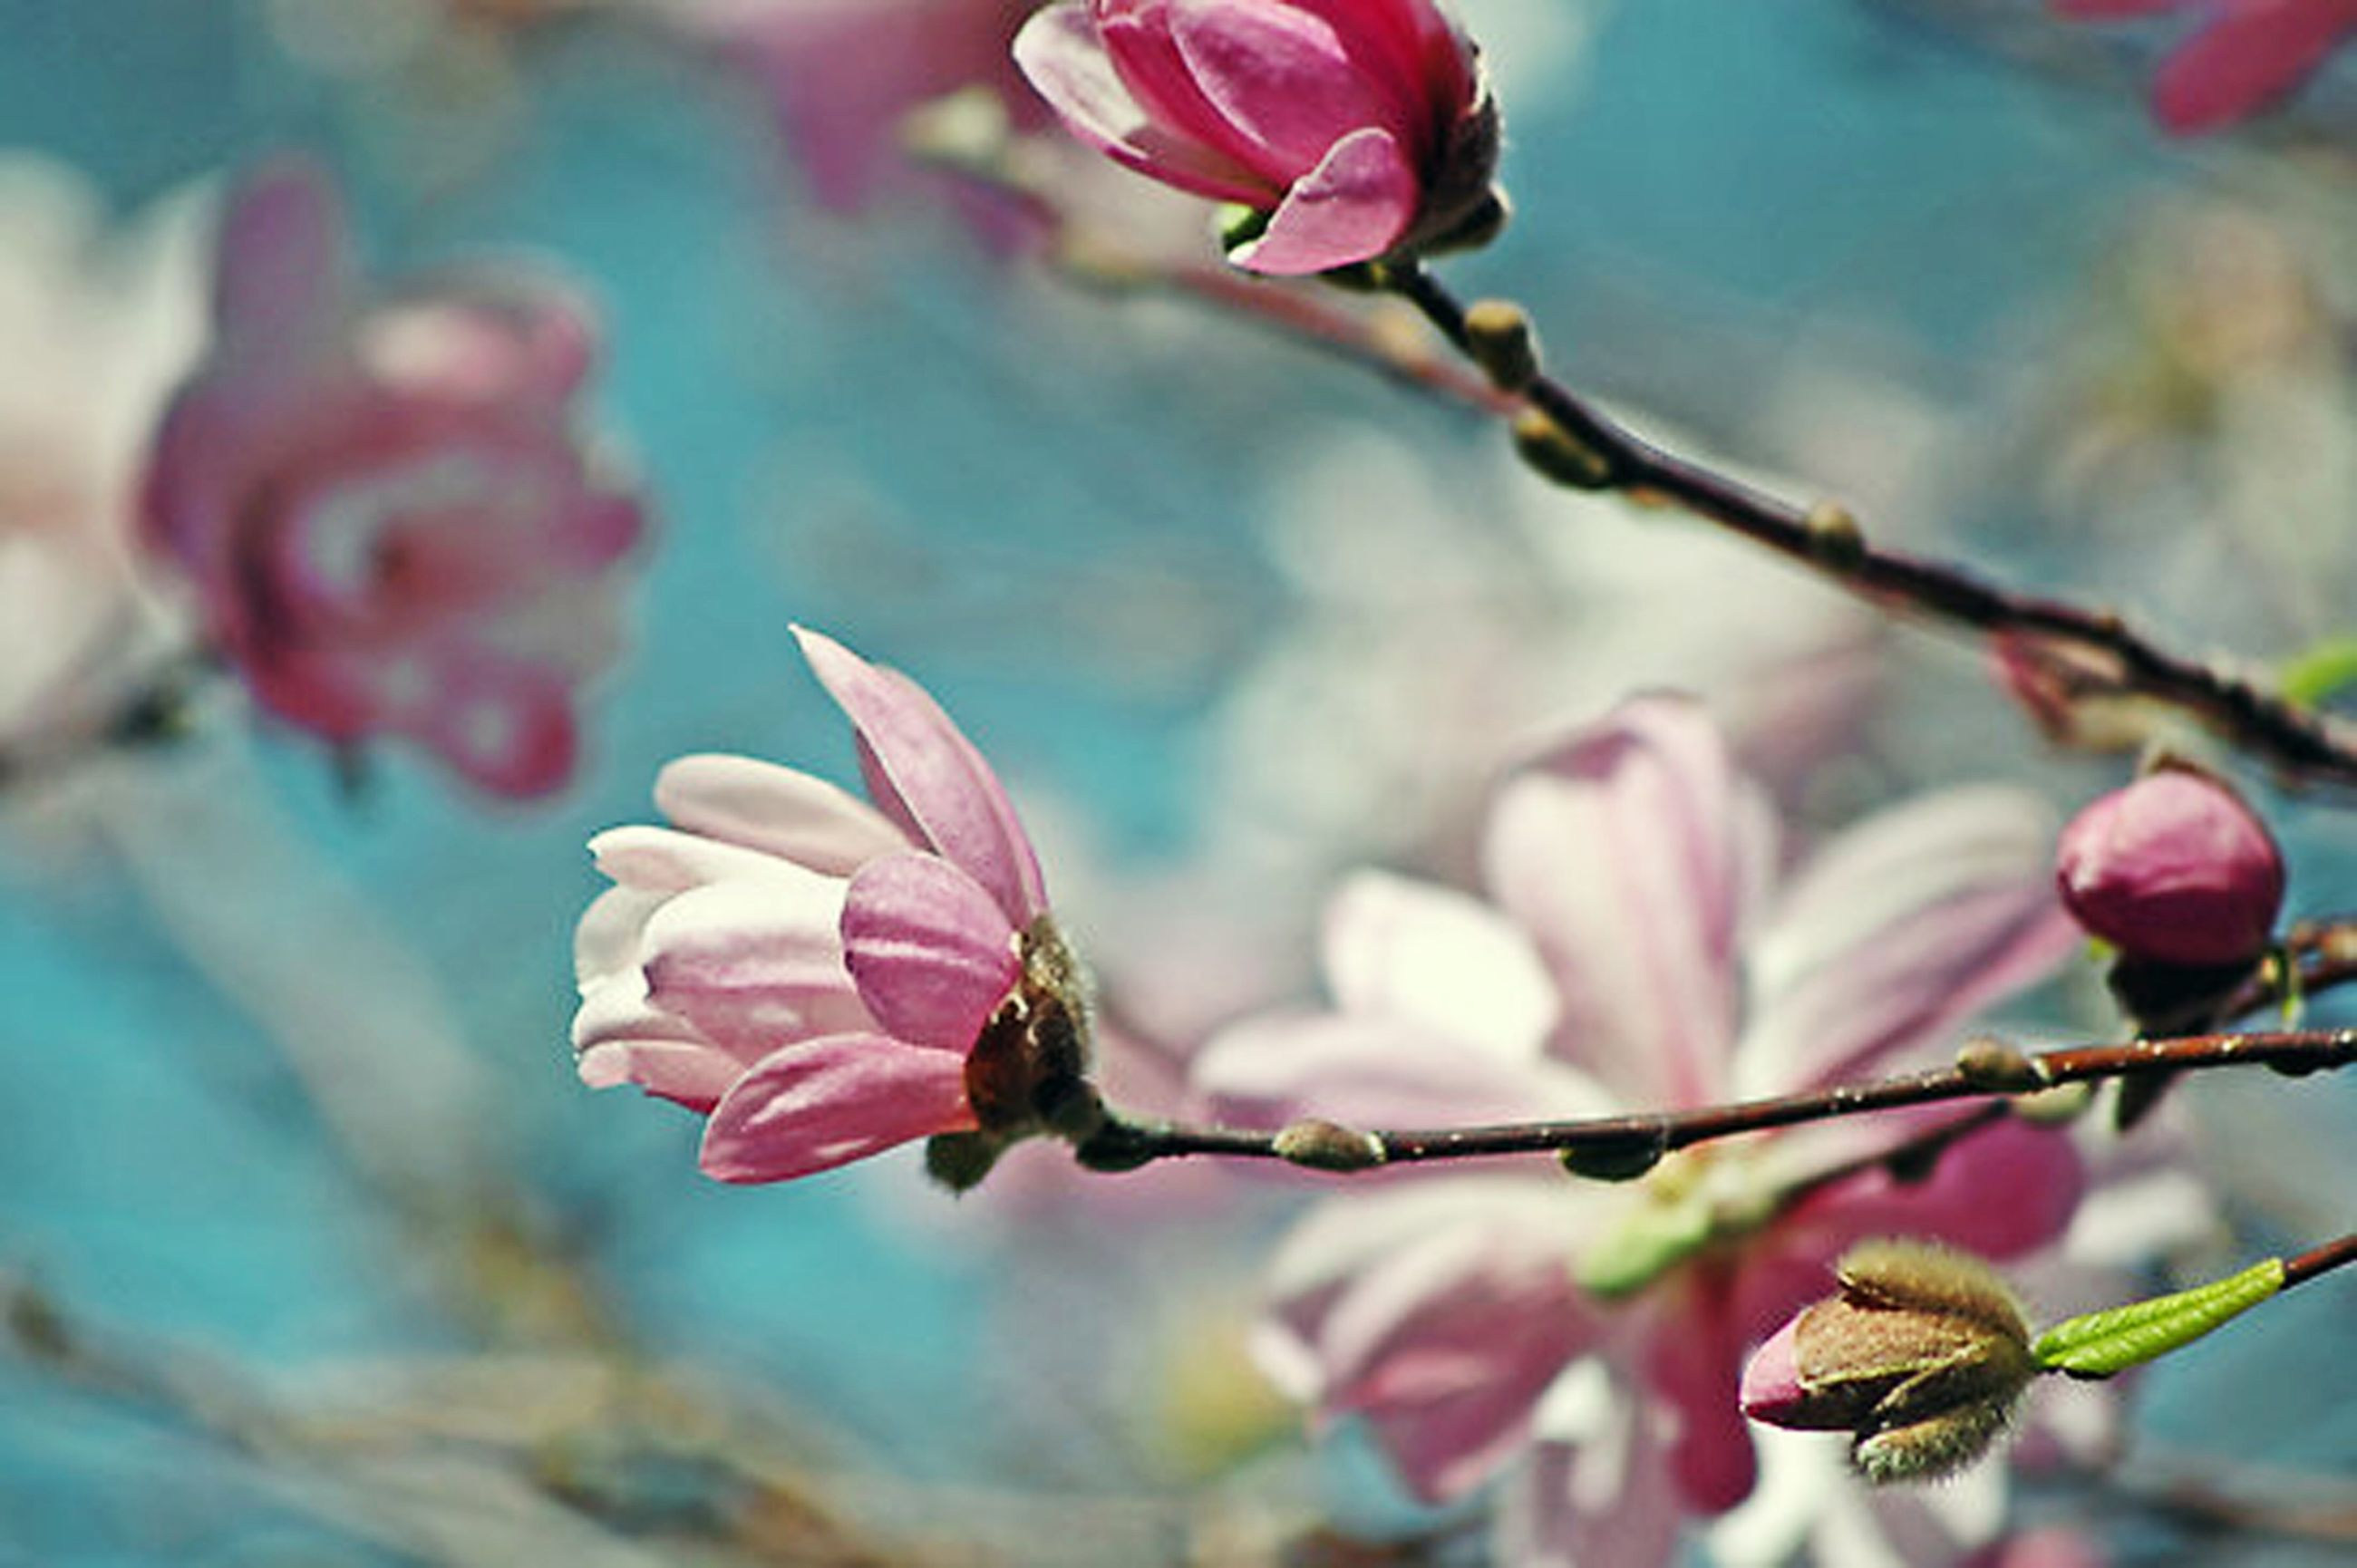 flower, freshness, fragility, growth, focus on foreground, branch, petal, bud, close-up, beauty in nature, twig, pink color, nature, stem, flower head, plant, blossom, blooming, in bloom, springtime